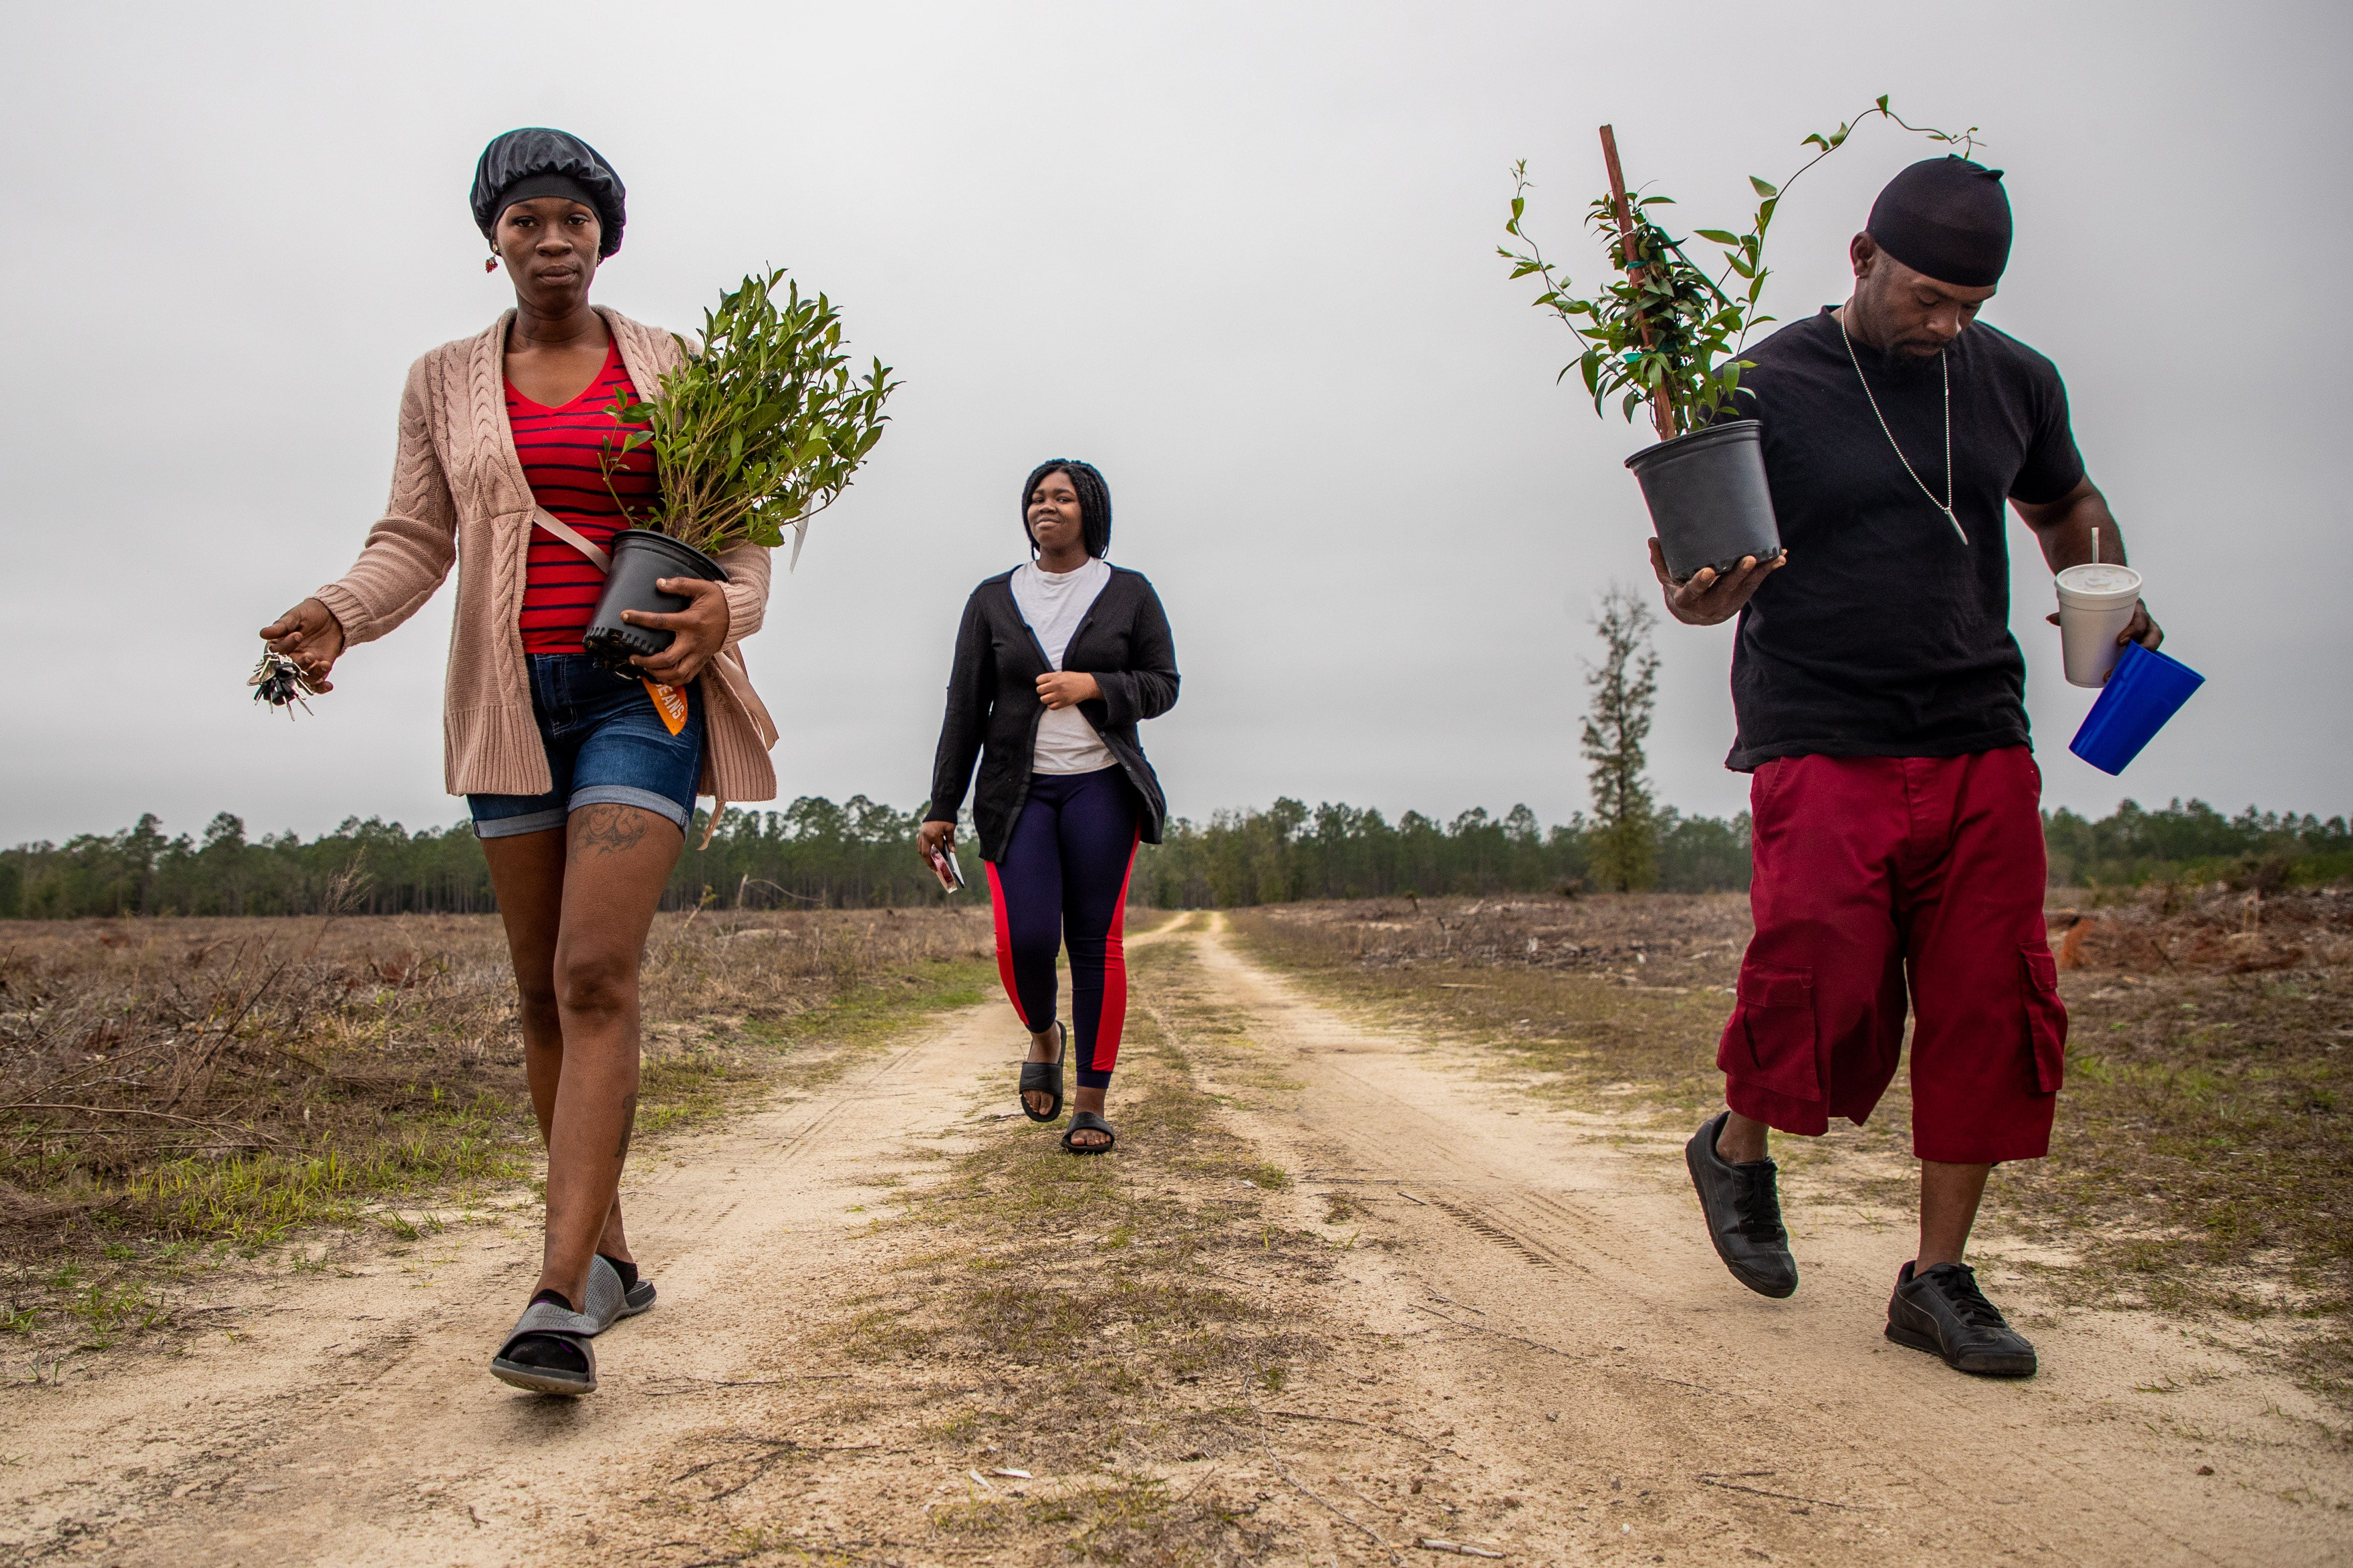 """Koquisha Cook, 35, left, and her boyfriend Kevin Moore carry plants as they walk to Noonie's gravesite. Jamirica """"Noonie"""" Cook, 15, was shot and killed last year in her home at Springfield Apartments. Noonie's sister Sharail """"Sugar"""" Sampson, 14, carries a heart-shaped box of chocolates to leave on her sister's grave."""